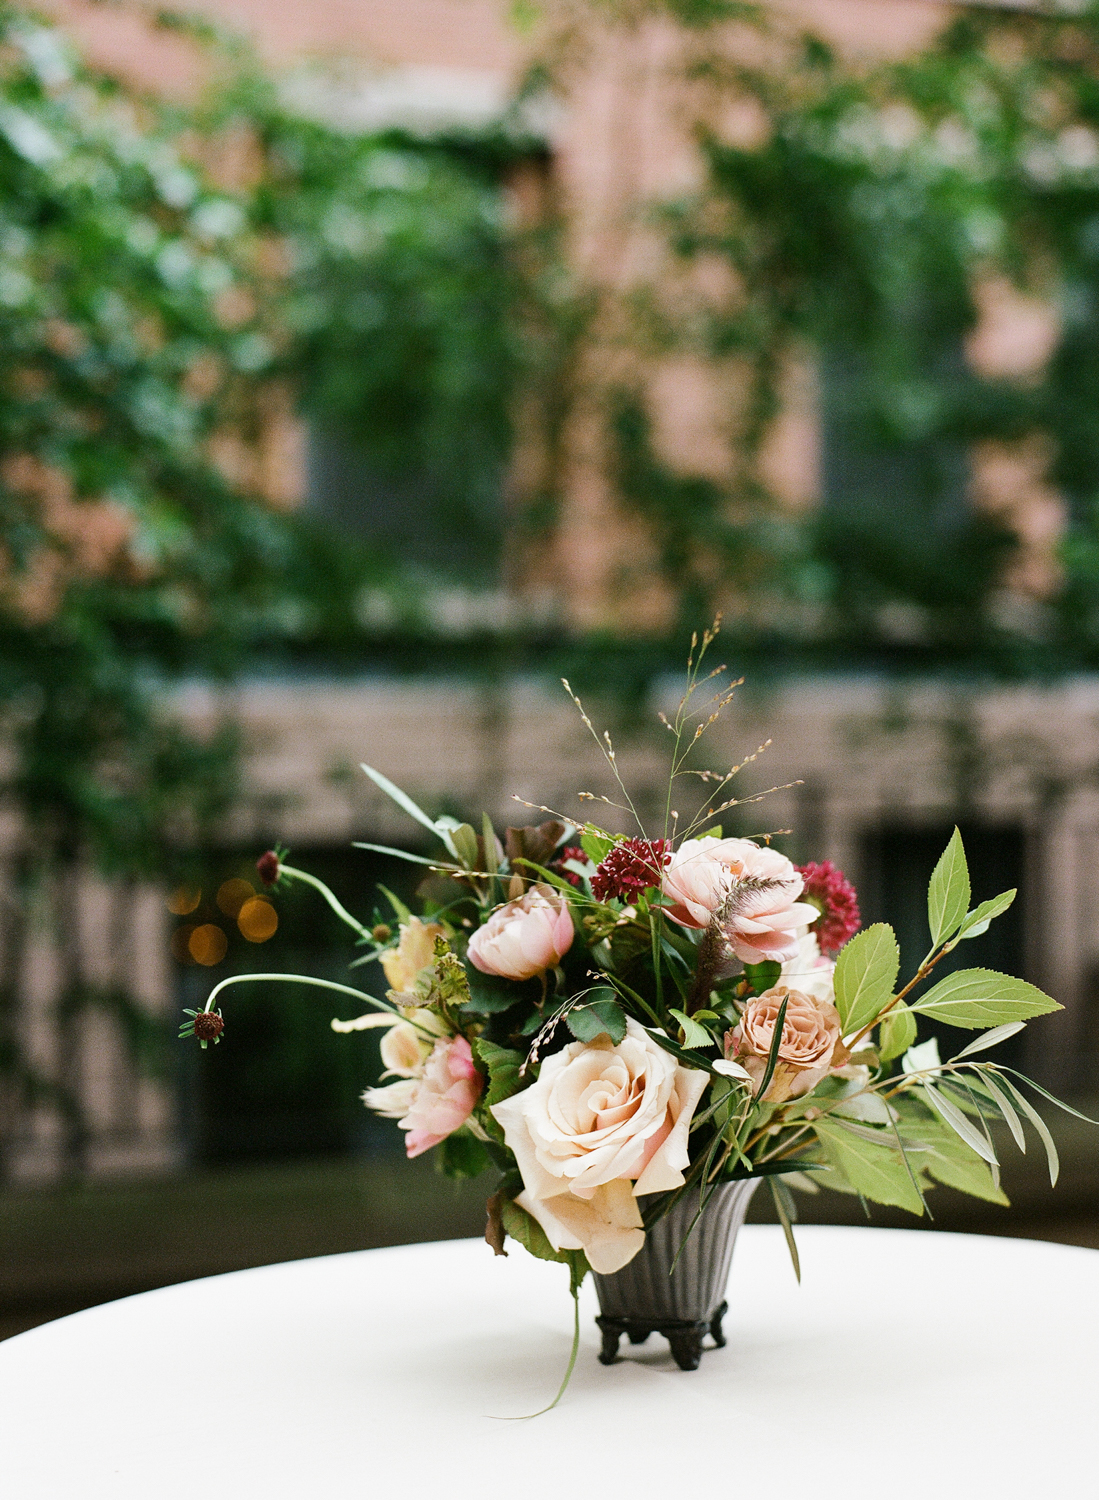 Old World NYC Wedding at the Highline Hotel - Flowers by Denise Fasanello Flowers - Photo by Heather Waraska 13.jpg